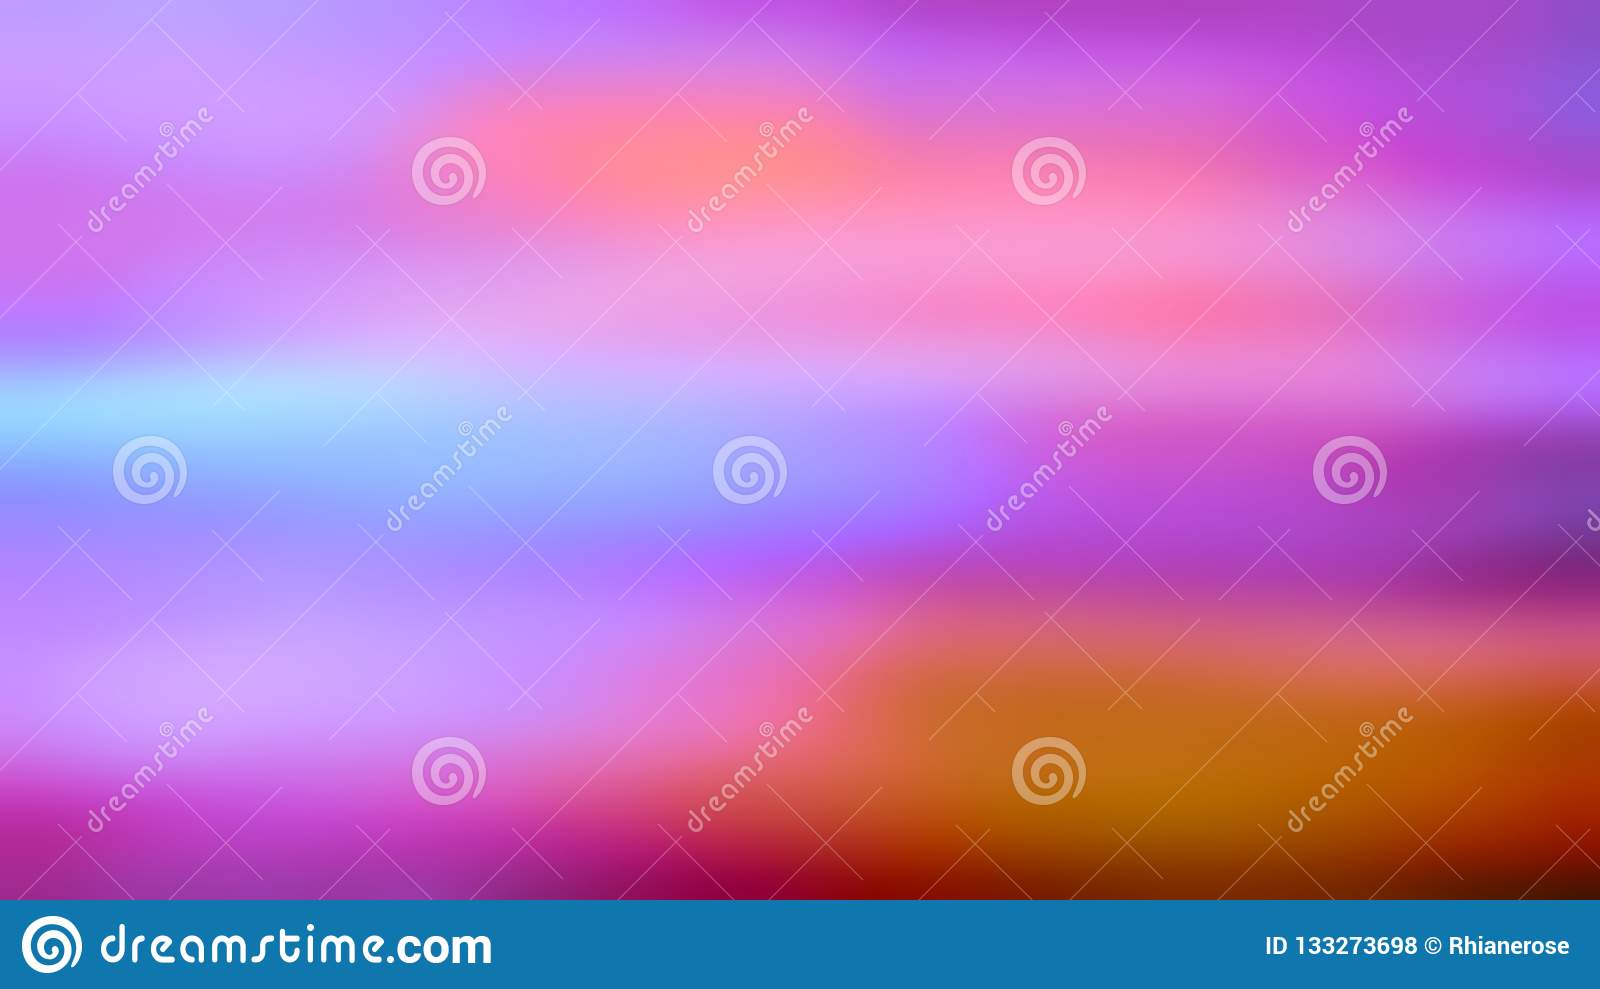 A loverly wallpaper with different colours merging horizontally